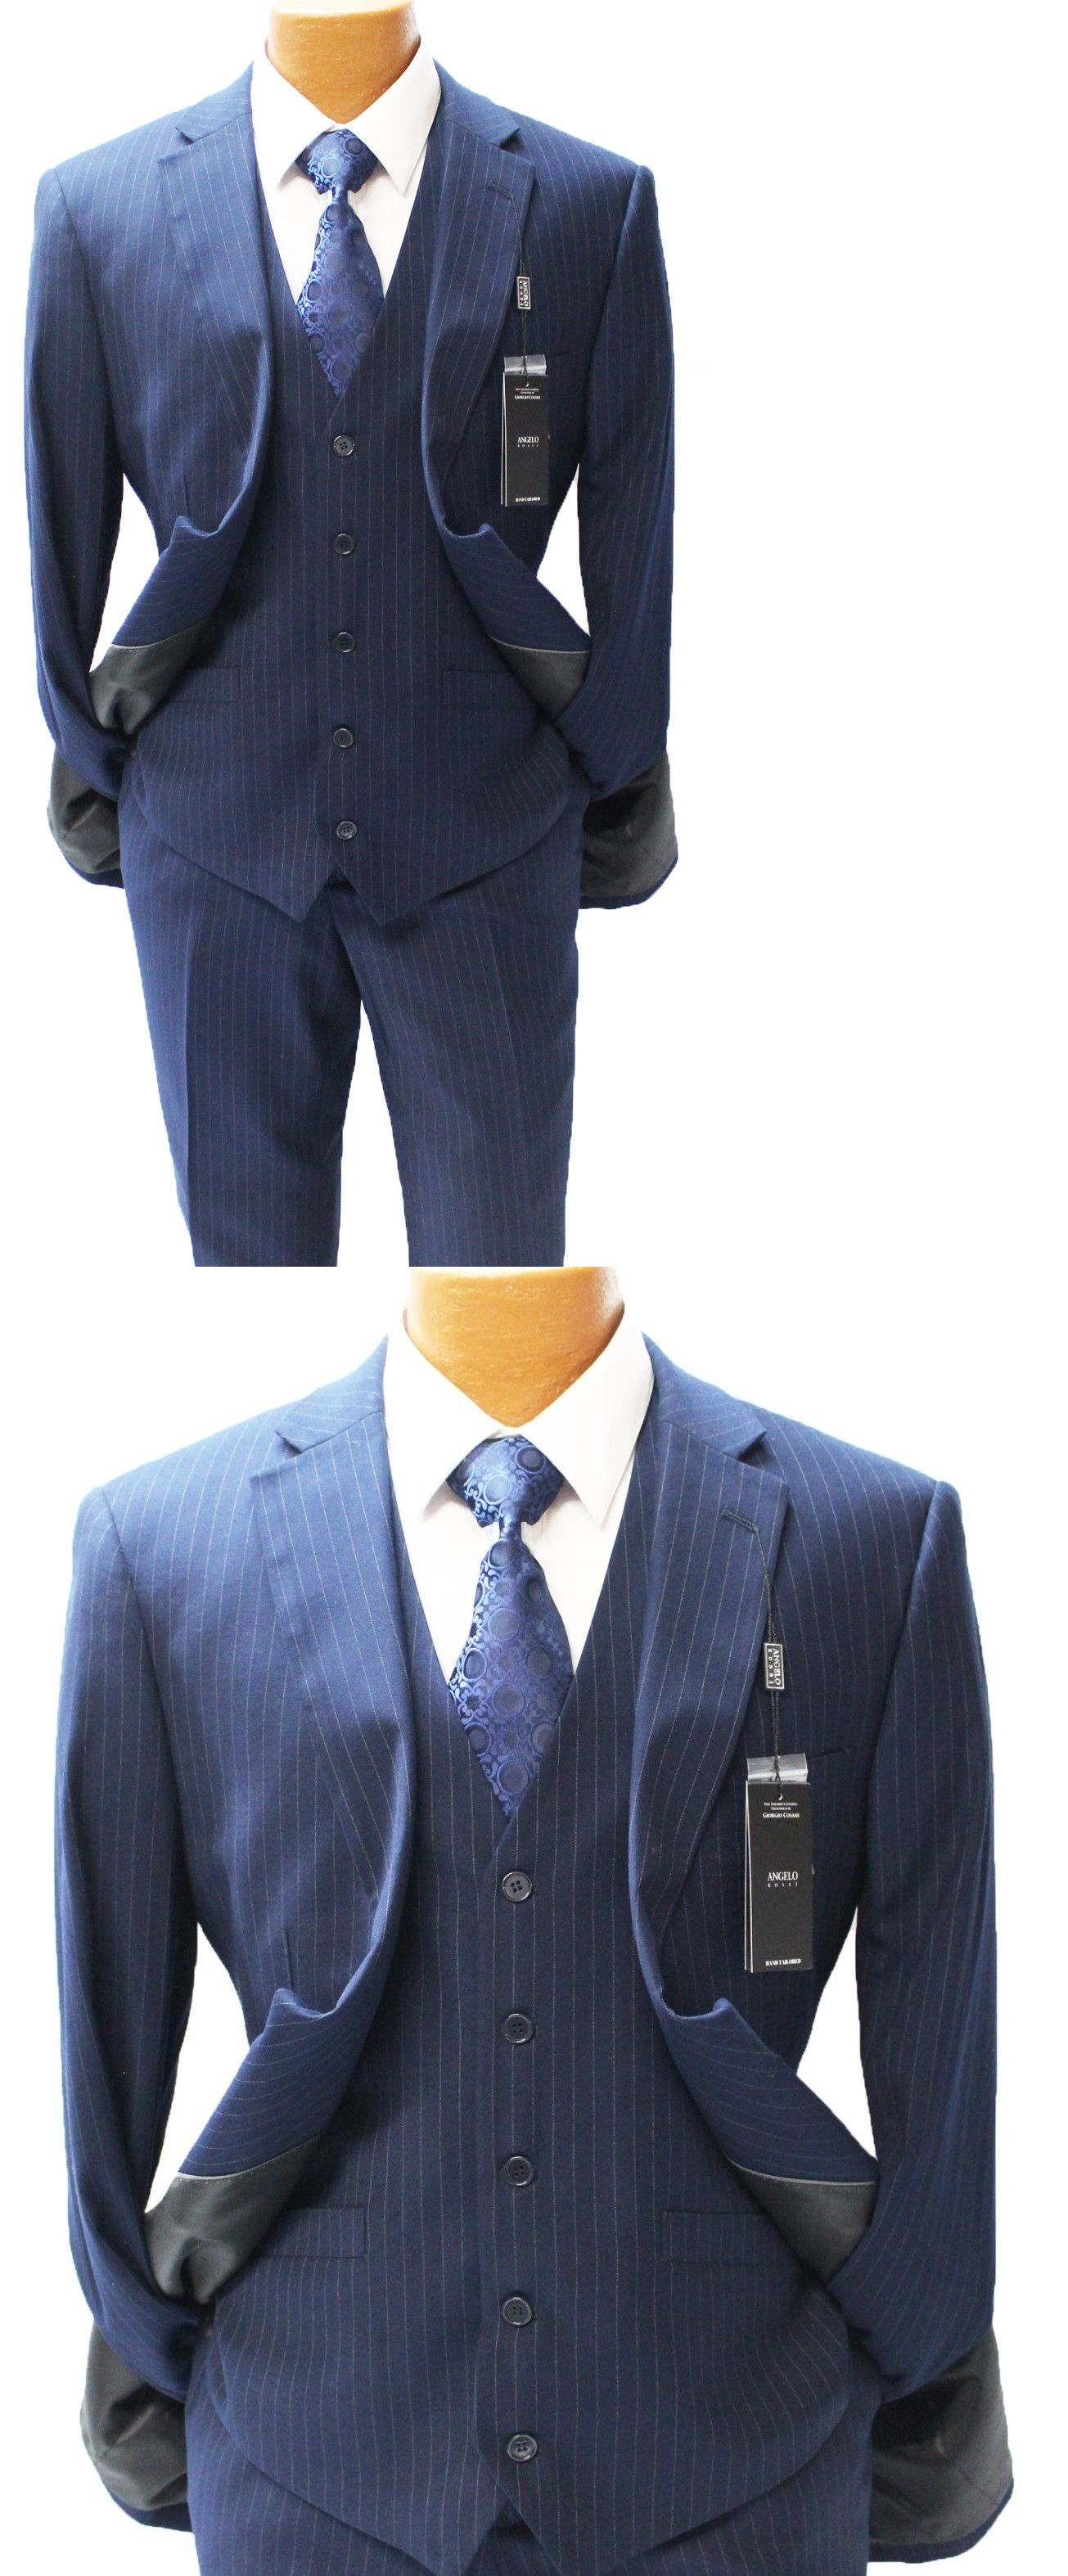 Suits angelo rossi navy pinstripe vested modern fit suit mens